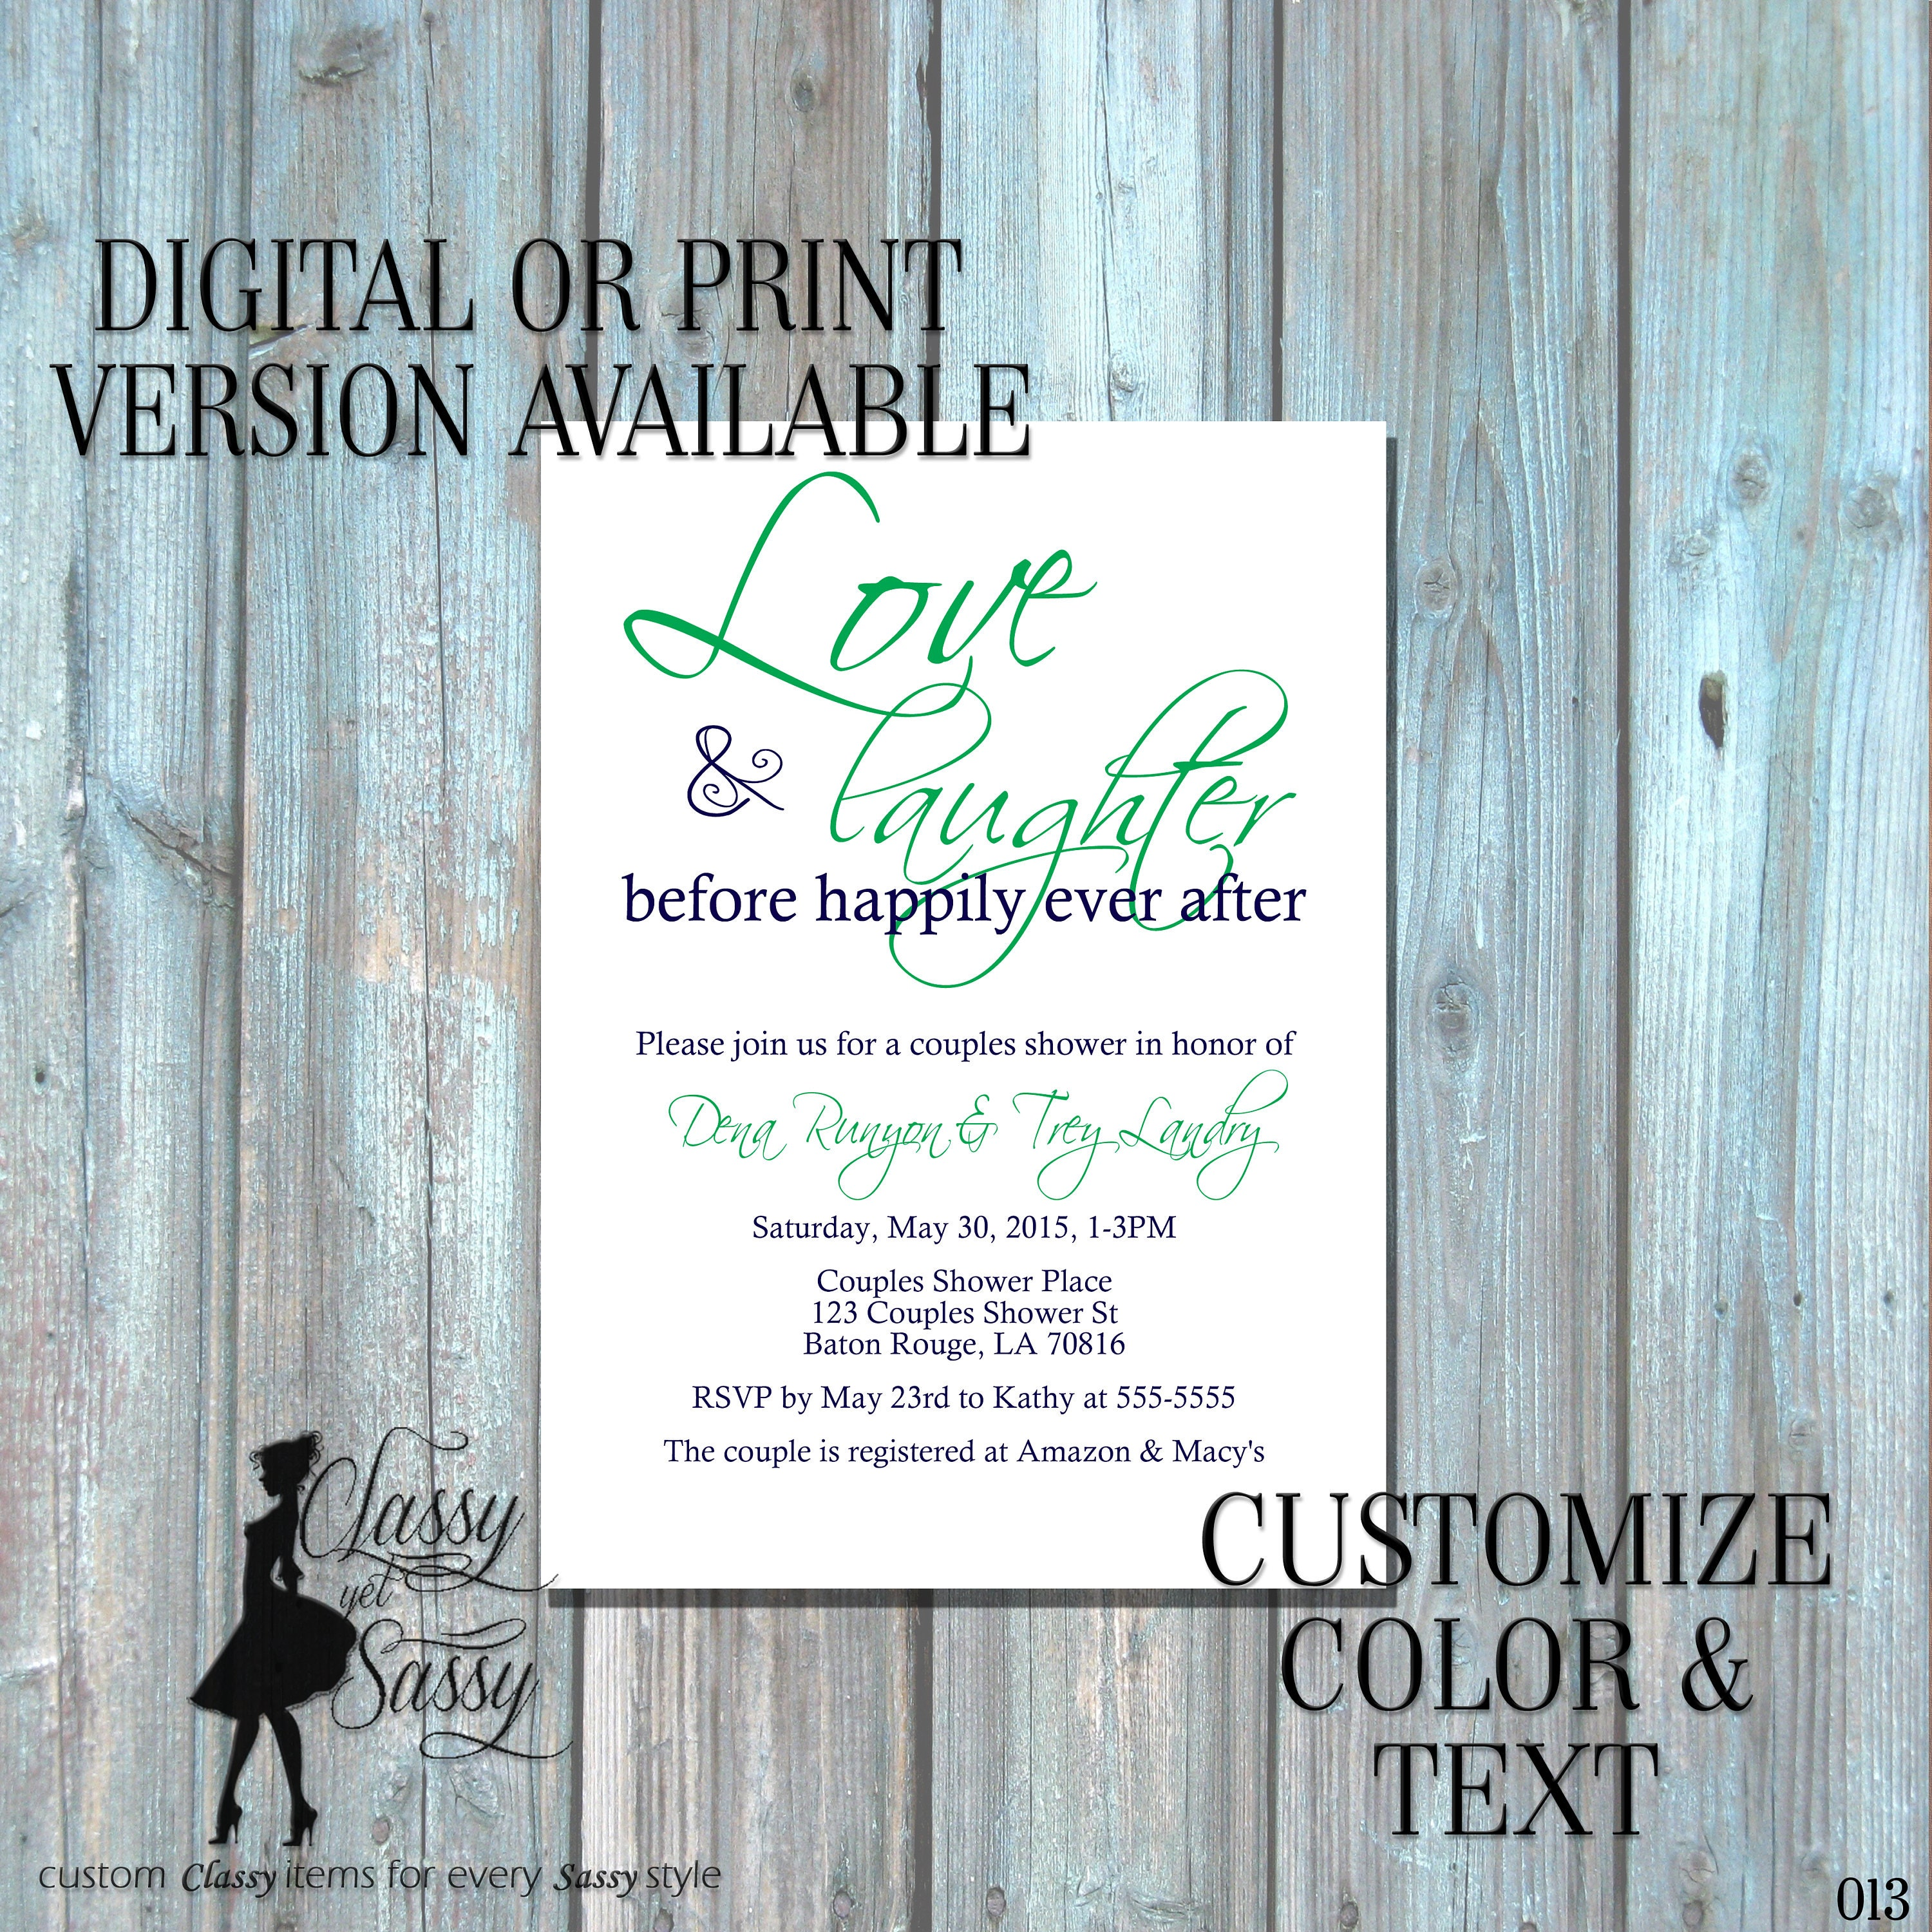 ca8ec93ebbc3 Love and Laughter Before Happily Ever After Invitation